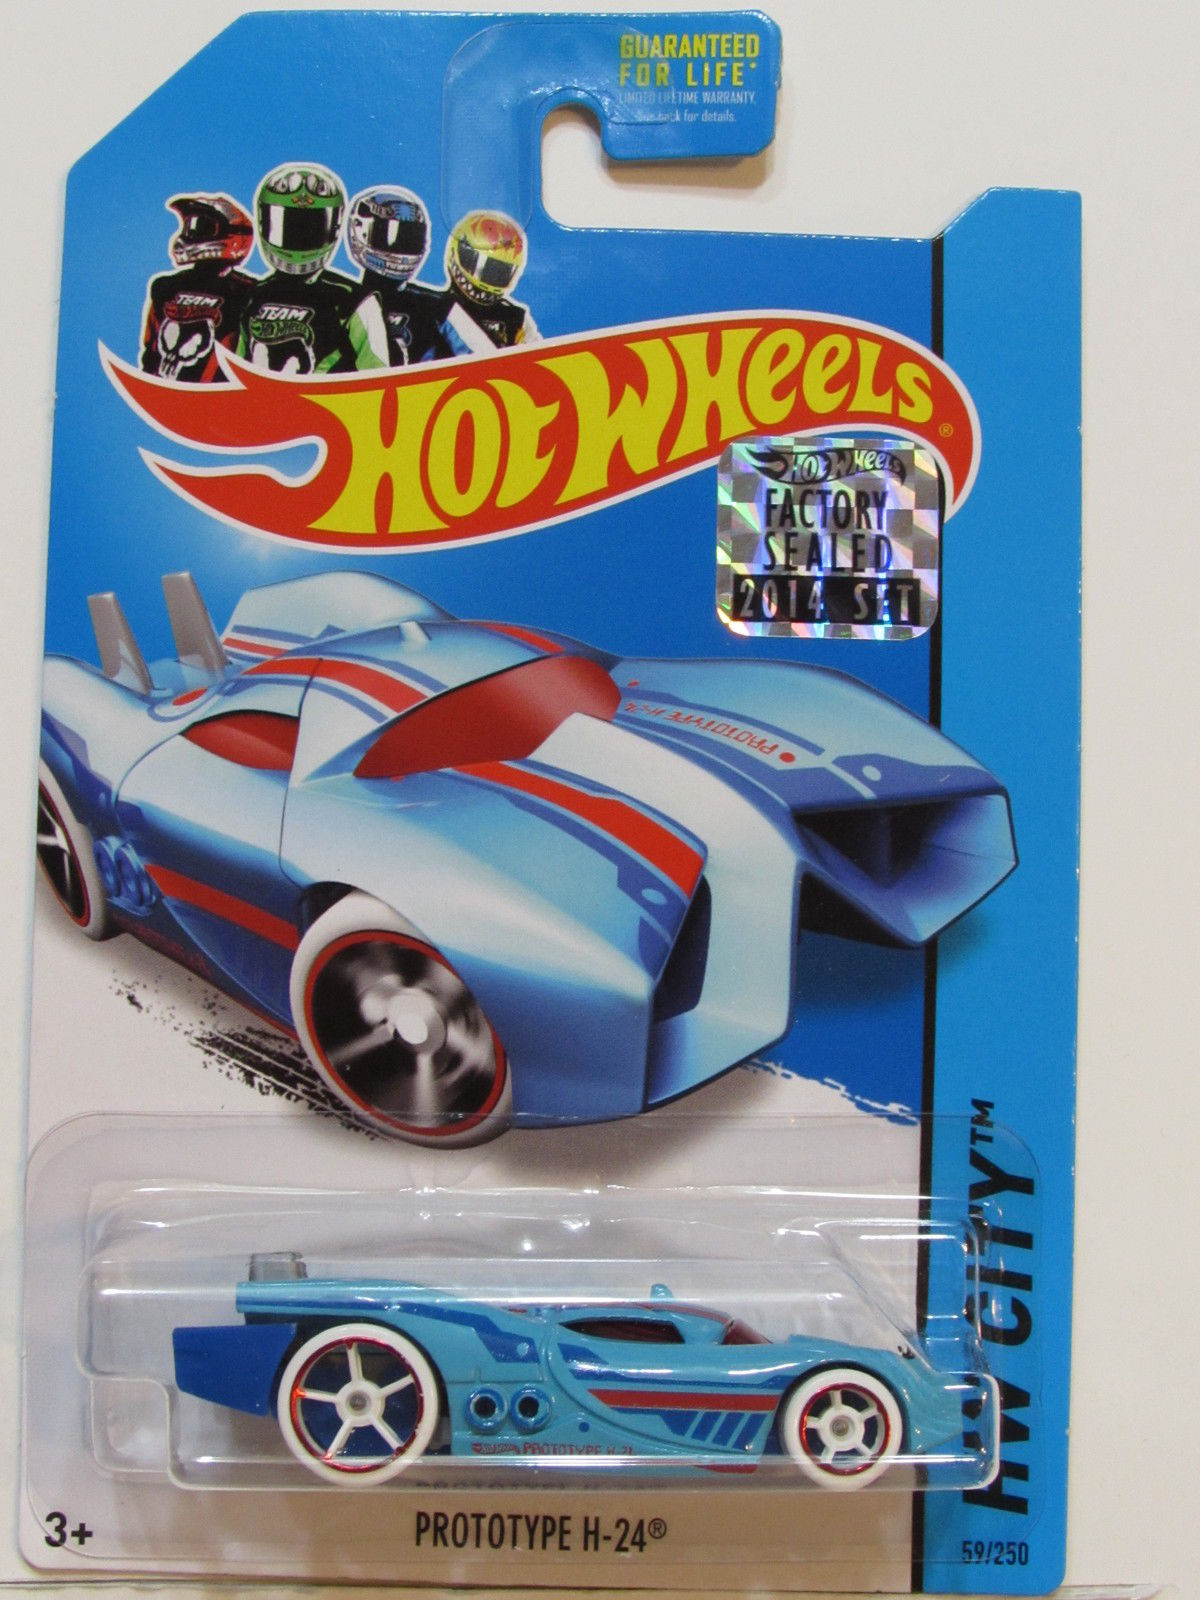 HOT WHEELS 2014 HW CITY PROTOTYPE H-24 FACTORY SEALED BLUE